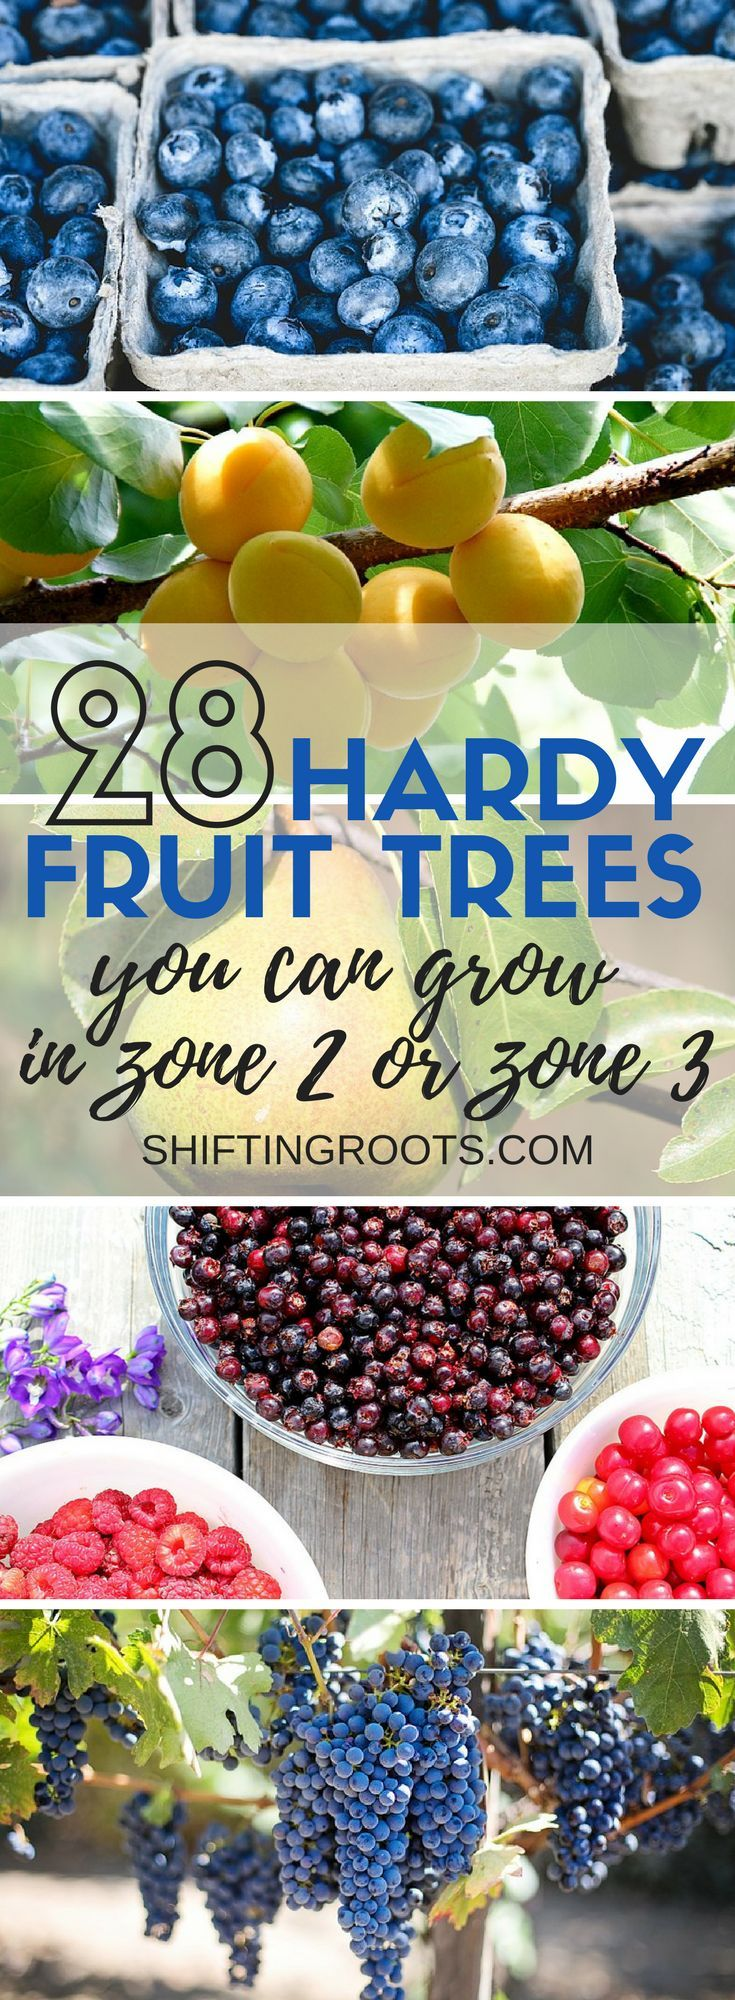 Want to plant hardy fruit trees in zone 2 or zone 3?  I've got 28 hardy fruits you can grow that are perfect for the cold climate backyard, garden, or landscape.  I've included lots of suggestions for my favourite varieties of apples, sour cherries, pears, raspberries, blueberries, grapes, and so much more.  Perfect for gardens in Canada! #gardening #fruittrees #hardyfruittrees #zone2 #zone3 #growfruit #fruitgrower #coldclimategardening #gardeninginCanada via @shifting_roots